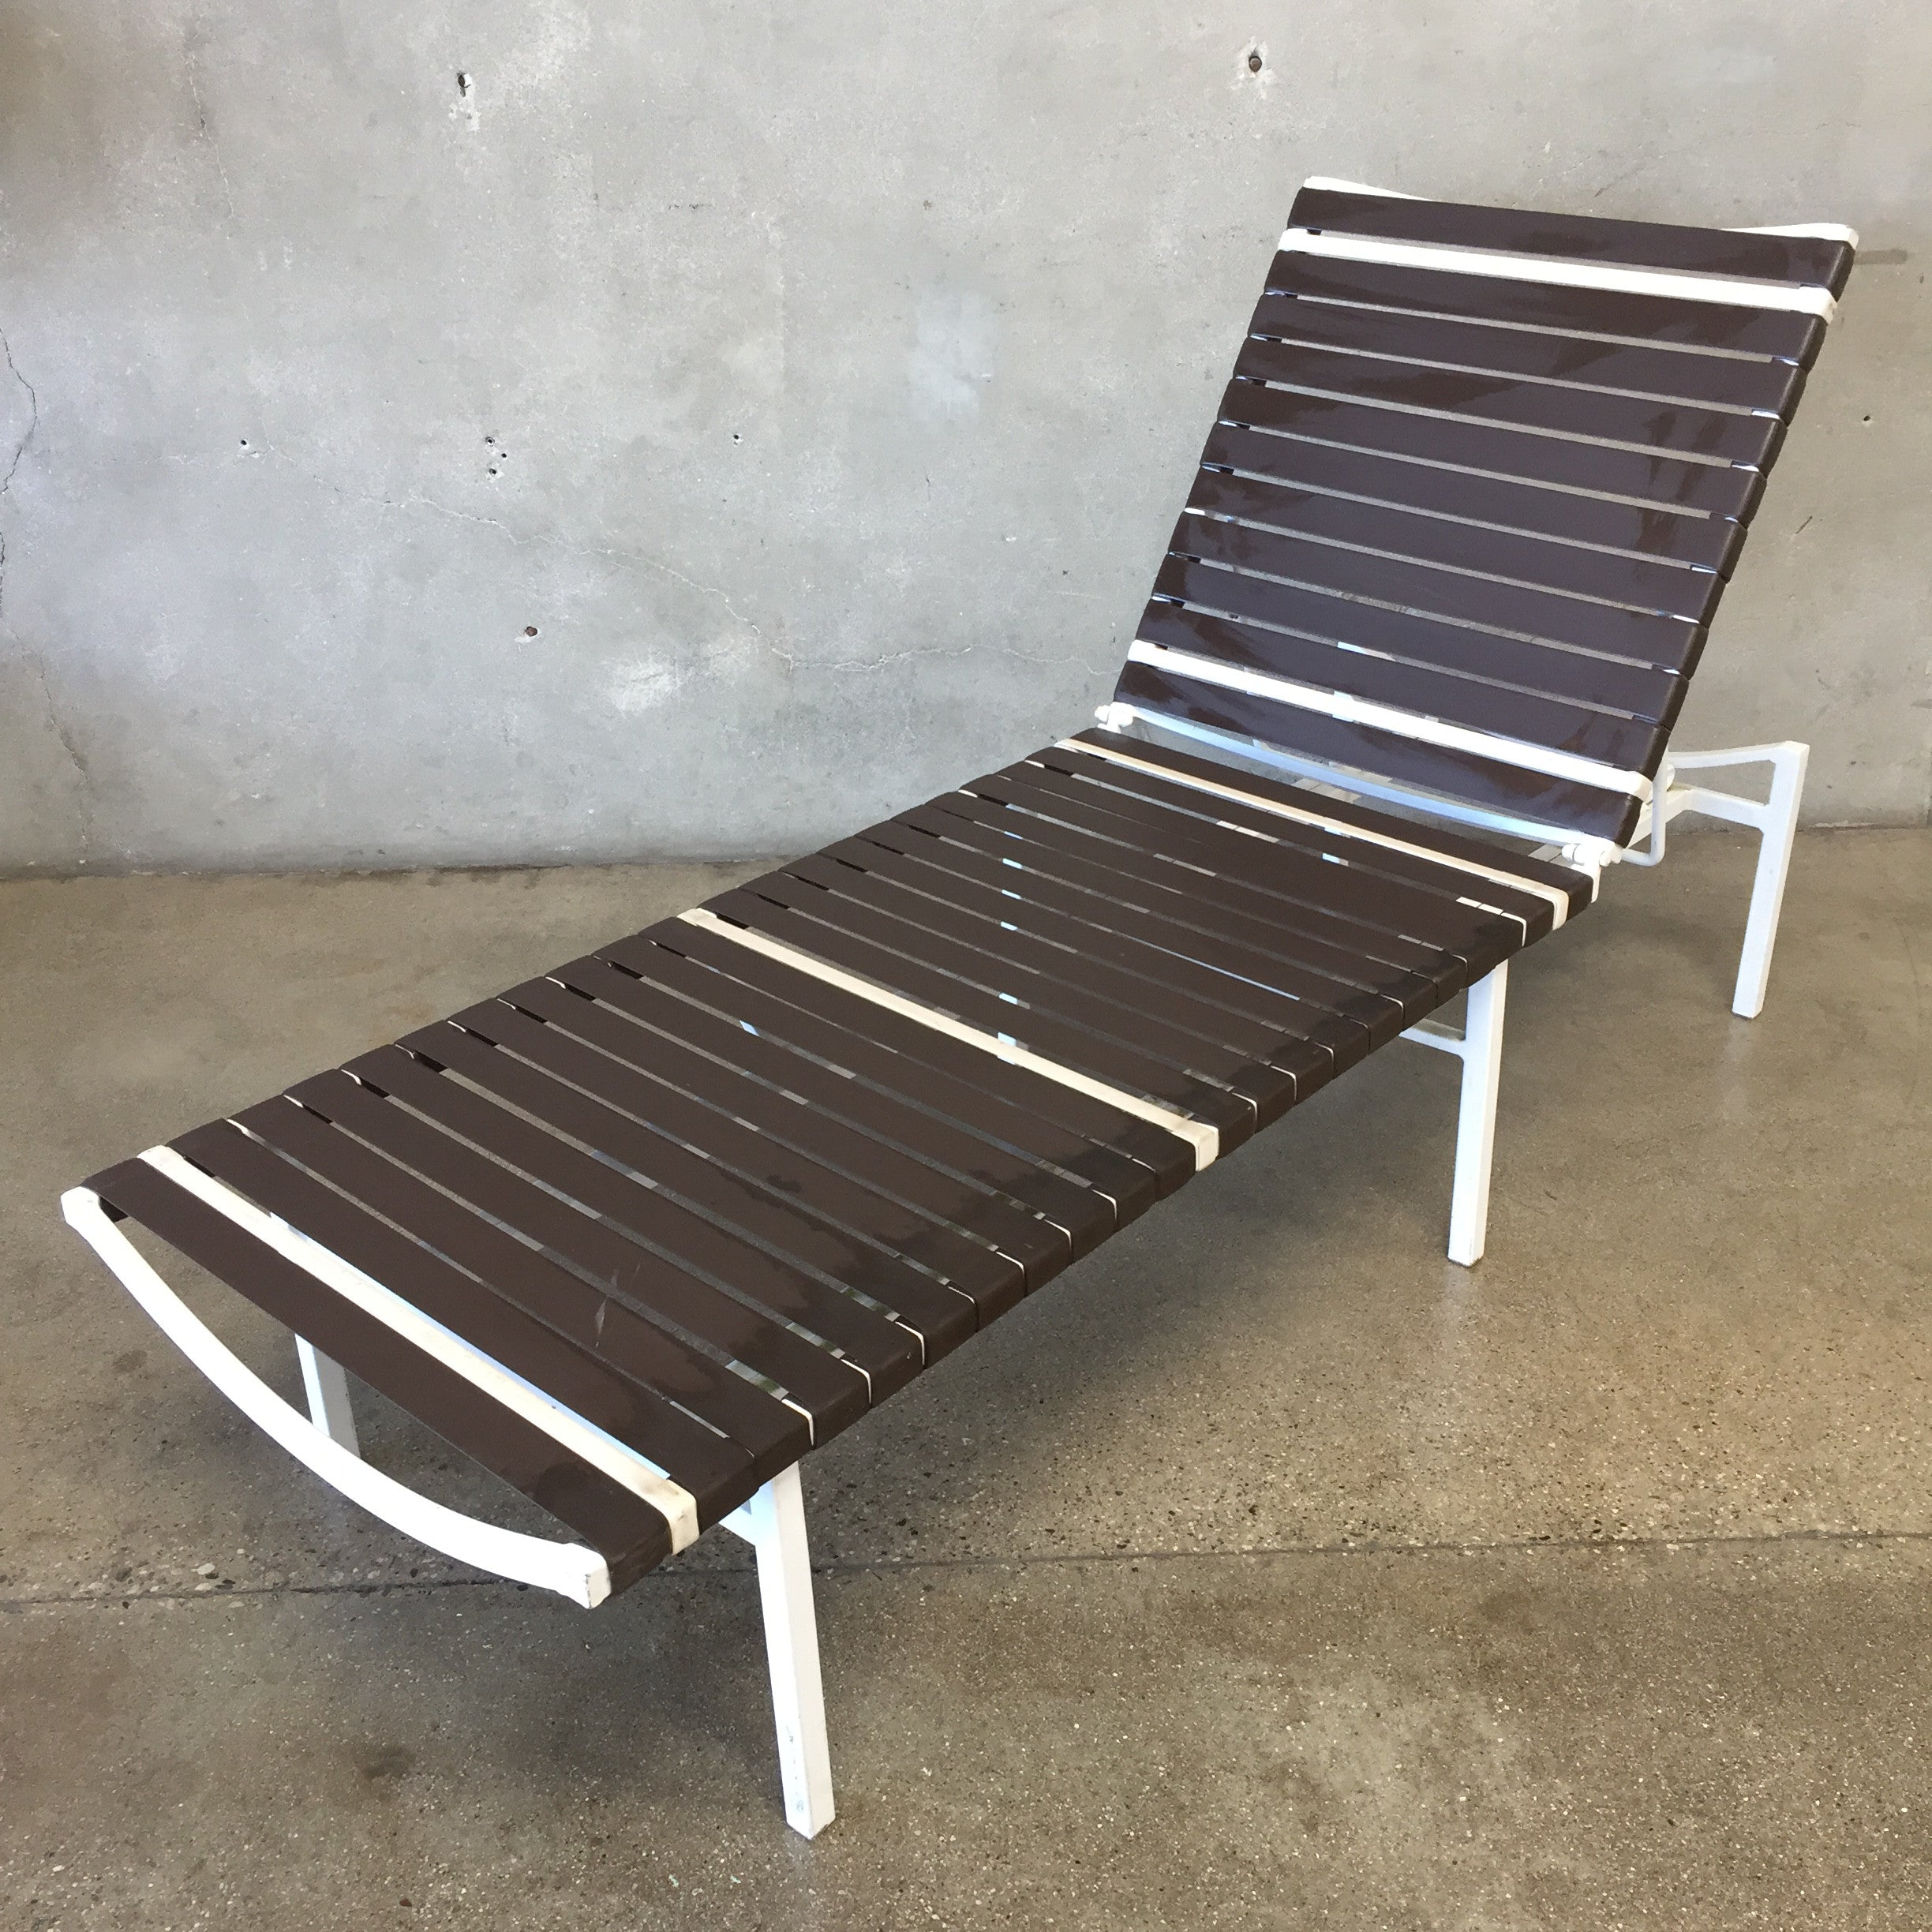 ... Pair of Vintage Mid Brown Jordan Style Century Chaise Lounge Chairs ... : mid century chaise lounge - Sectionals, Sofas & Couches